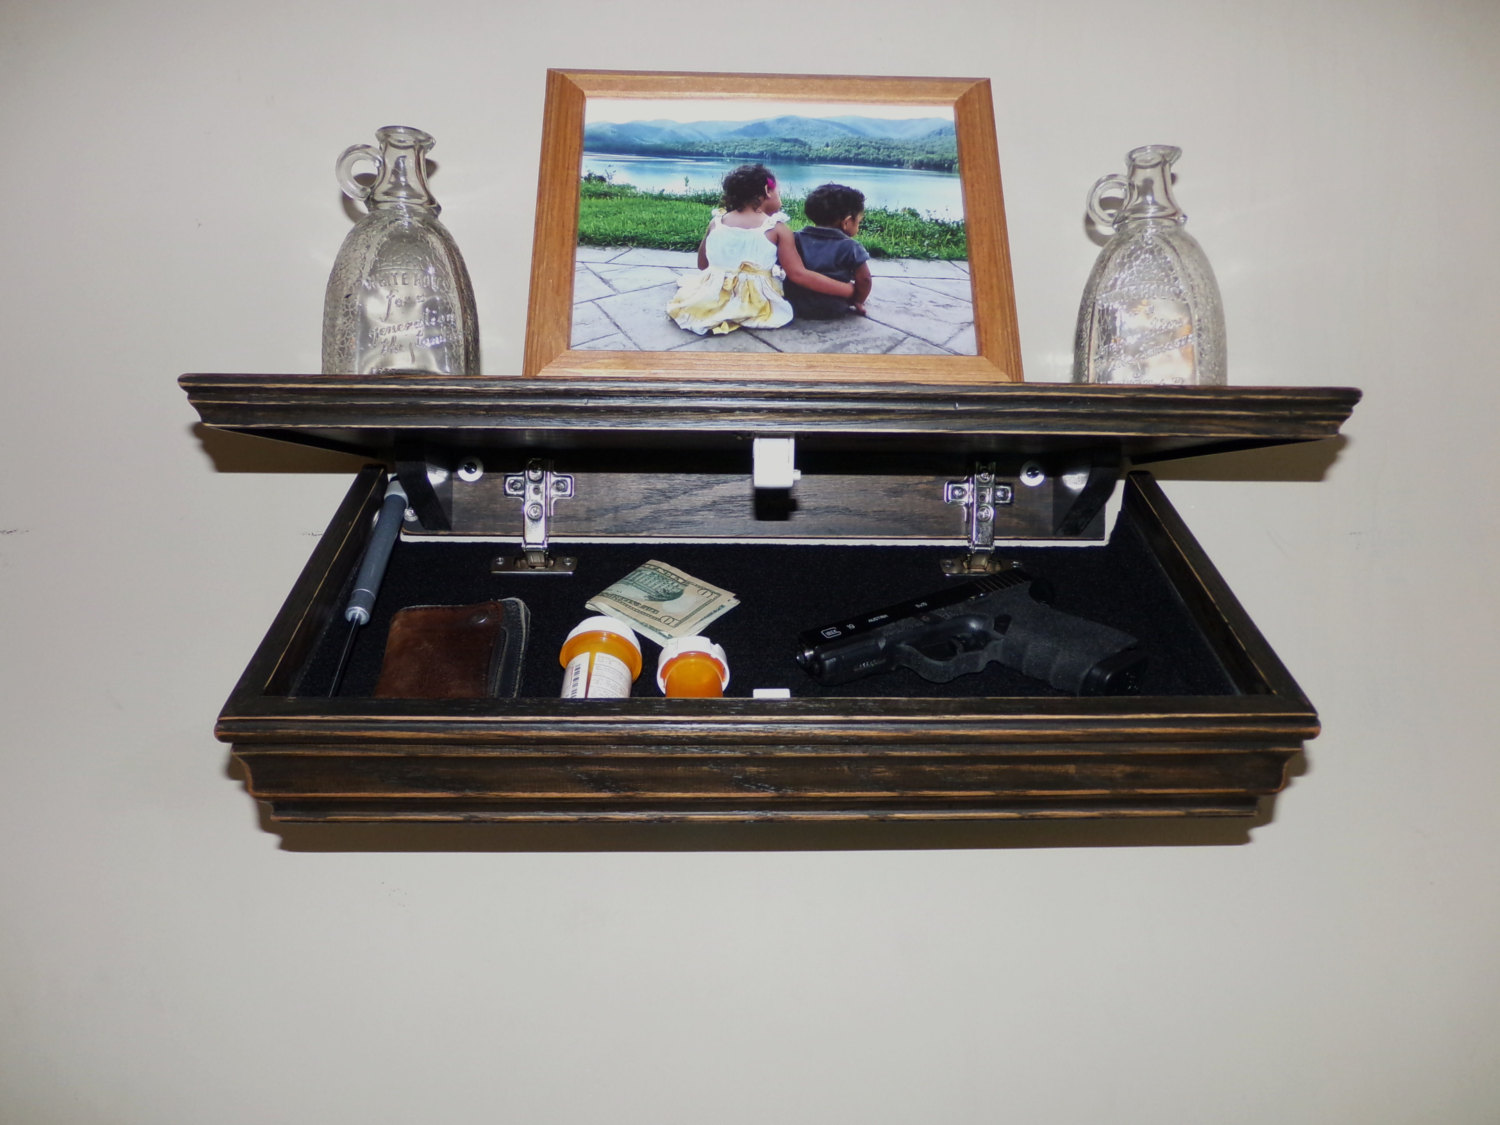 Hidden Gun Compartment Under Shelf | StashVault